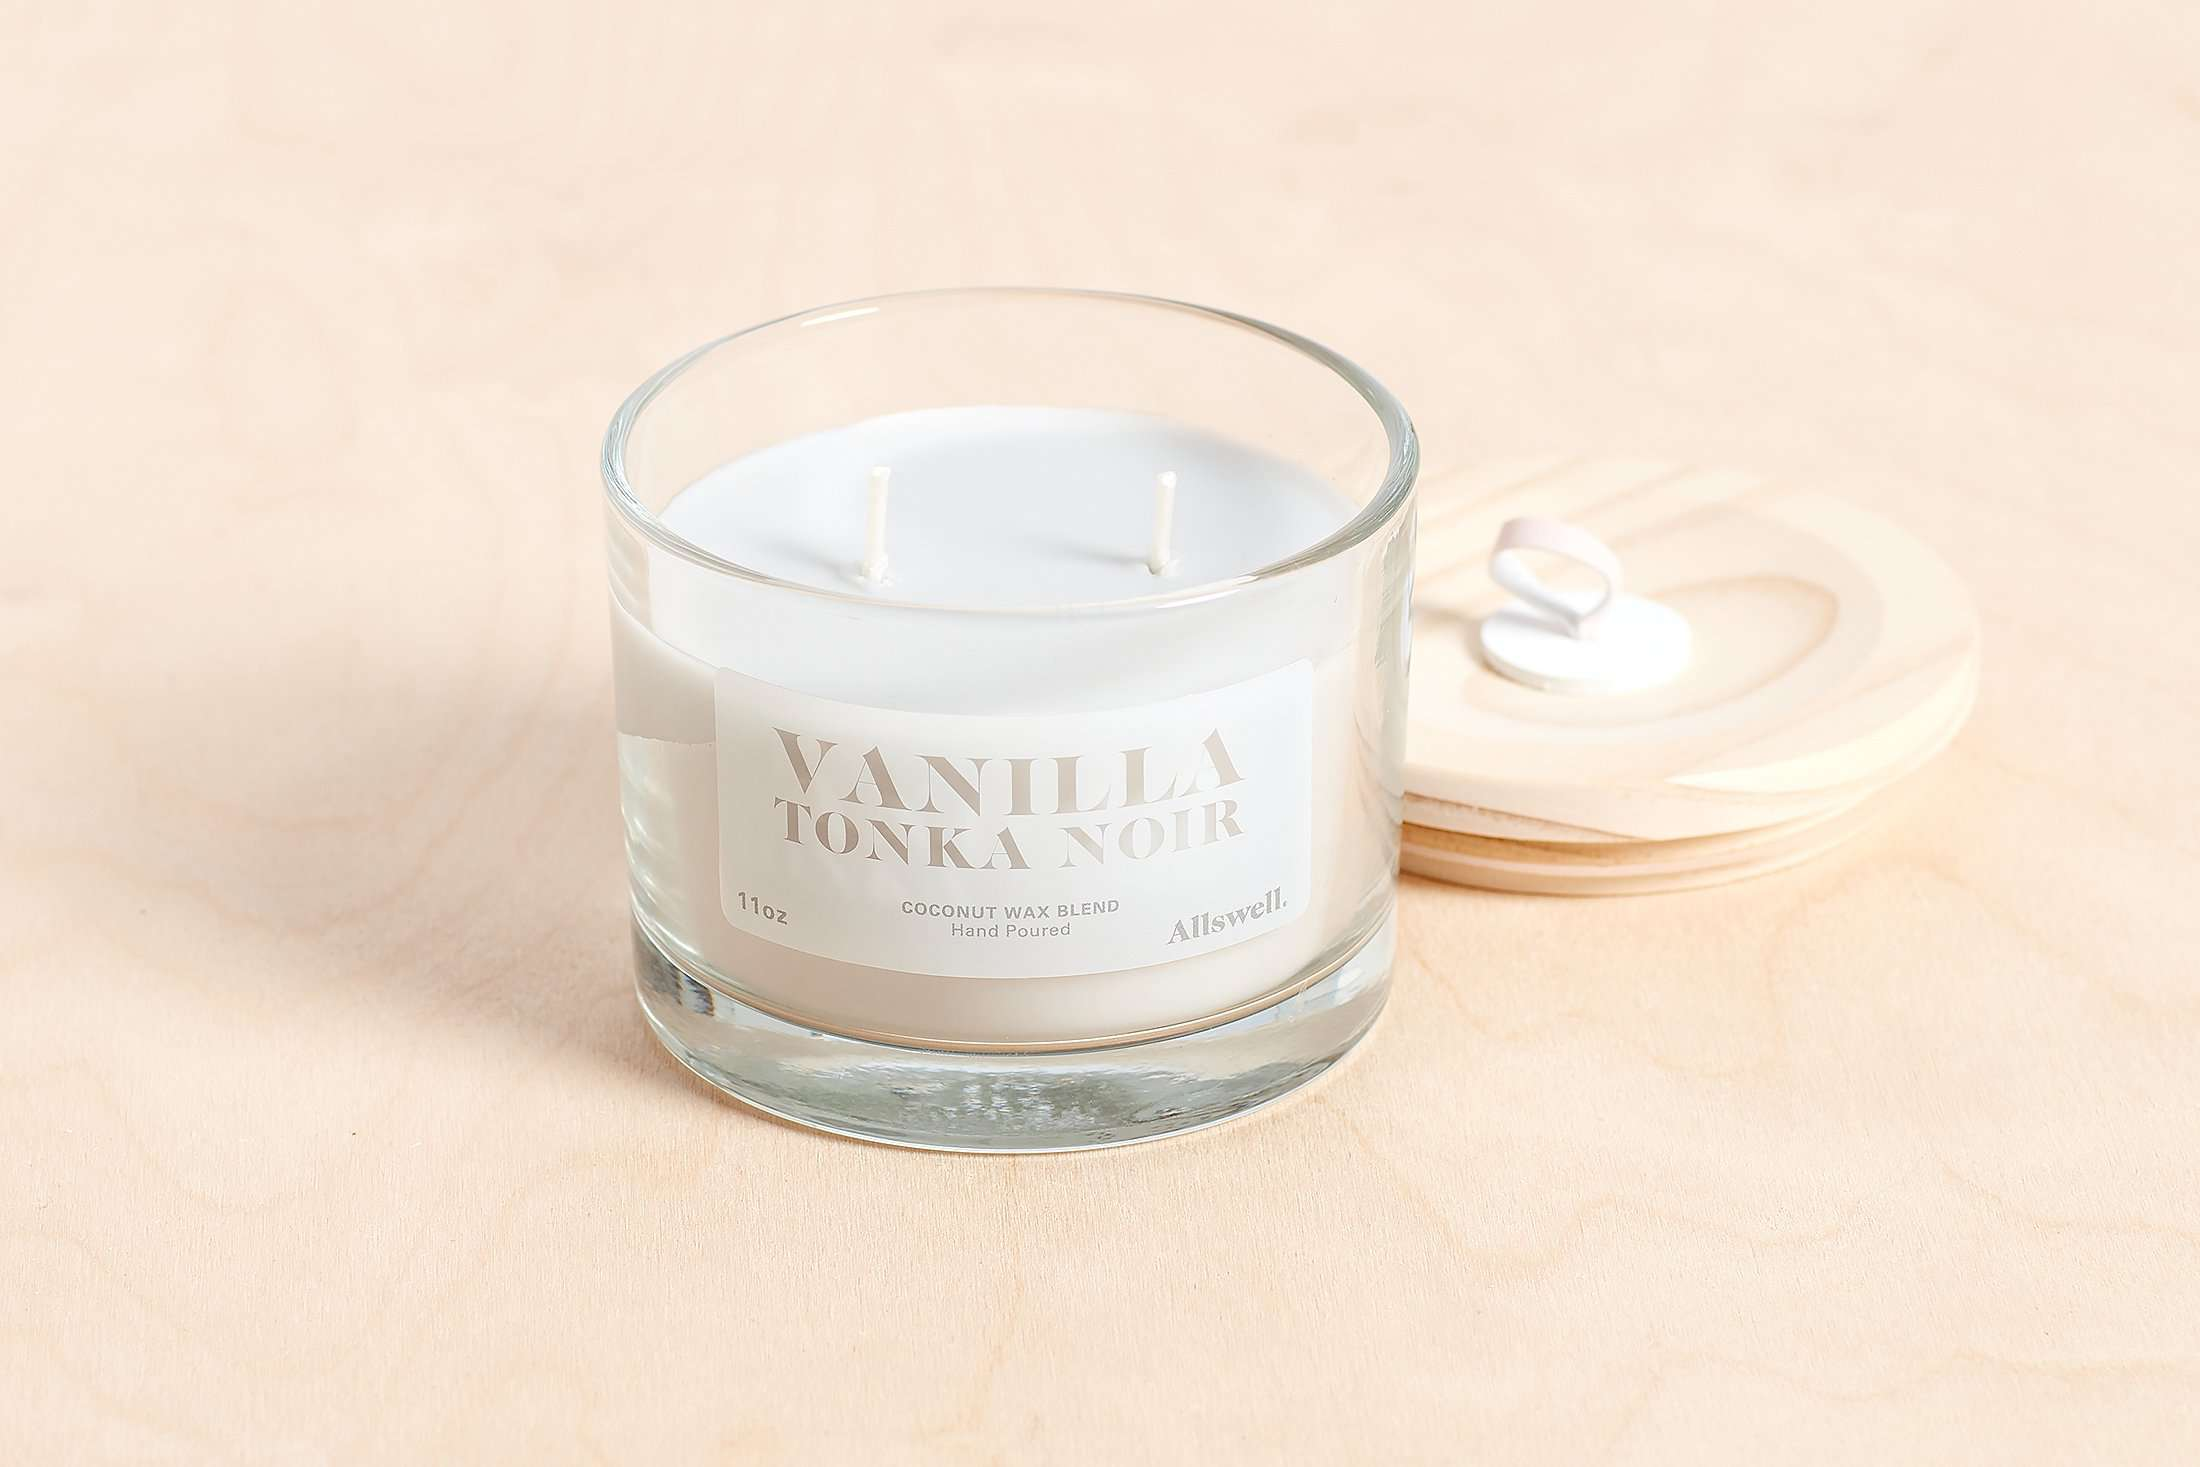 Allswell Coconut Wax Blend Candle